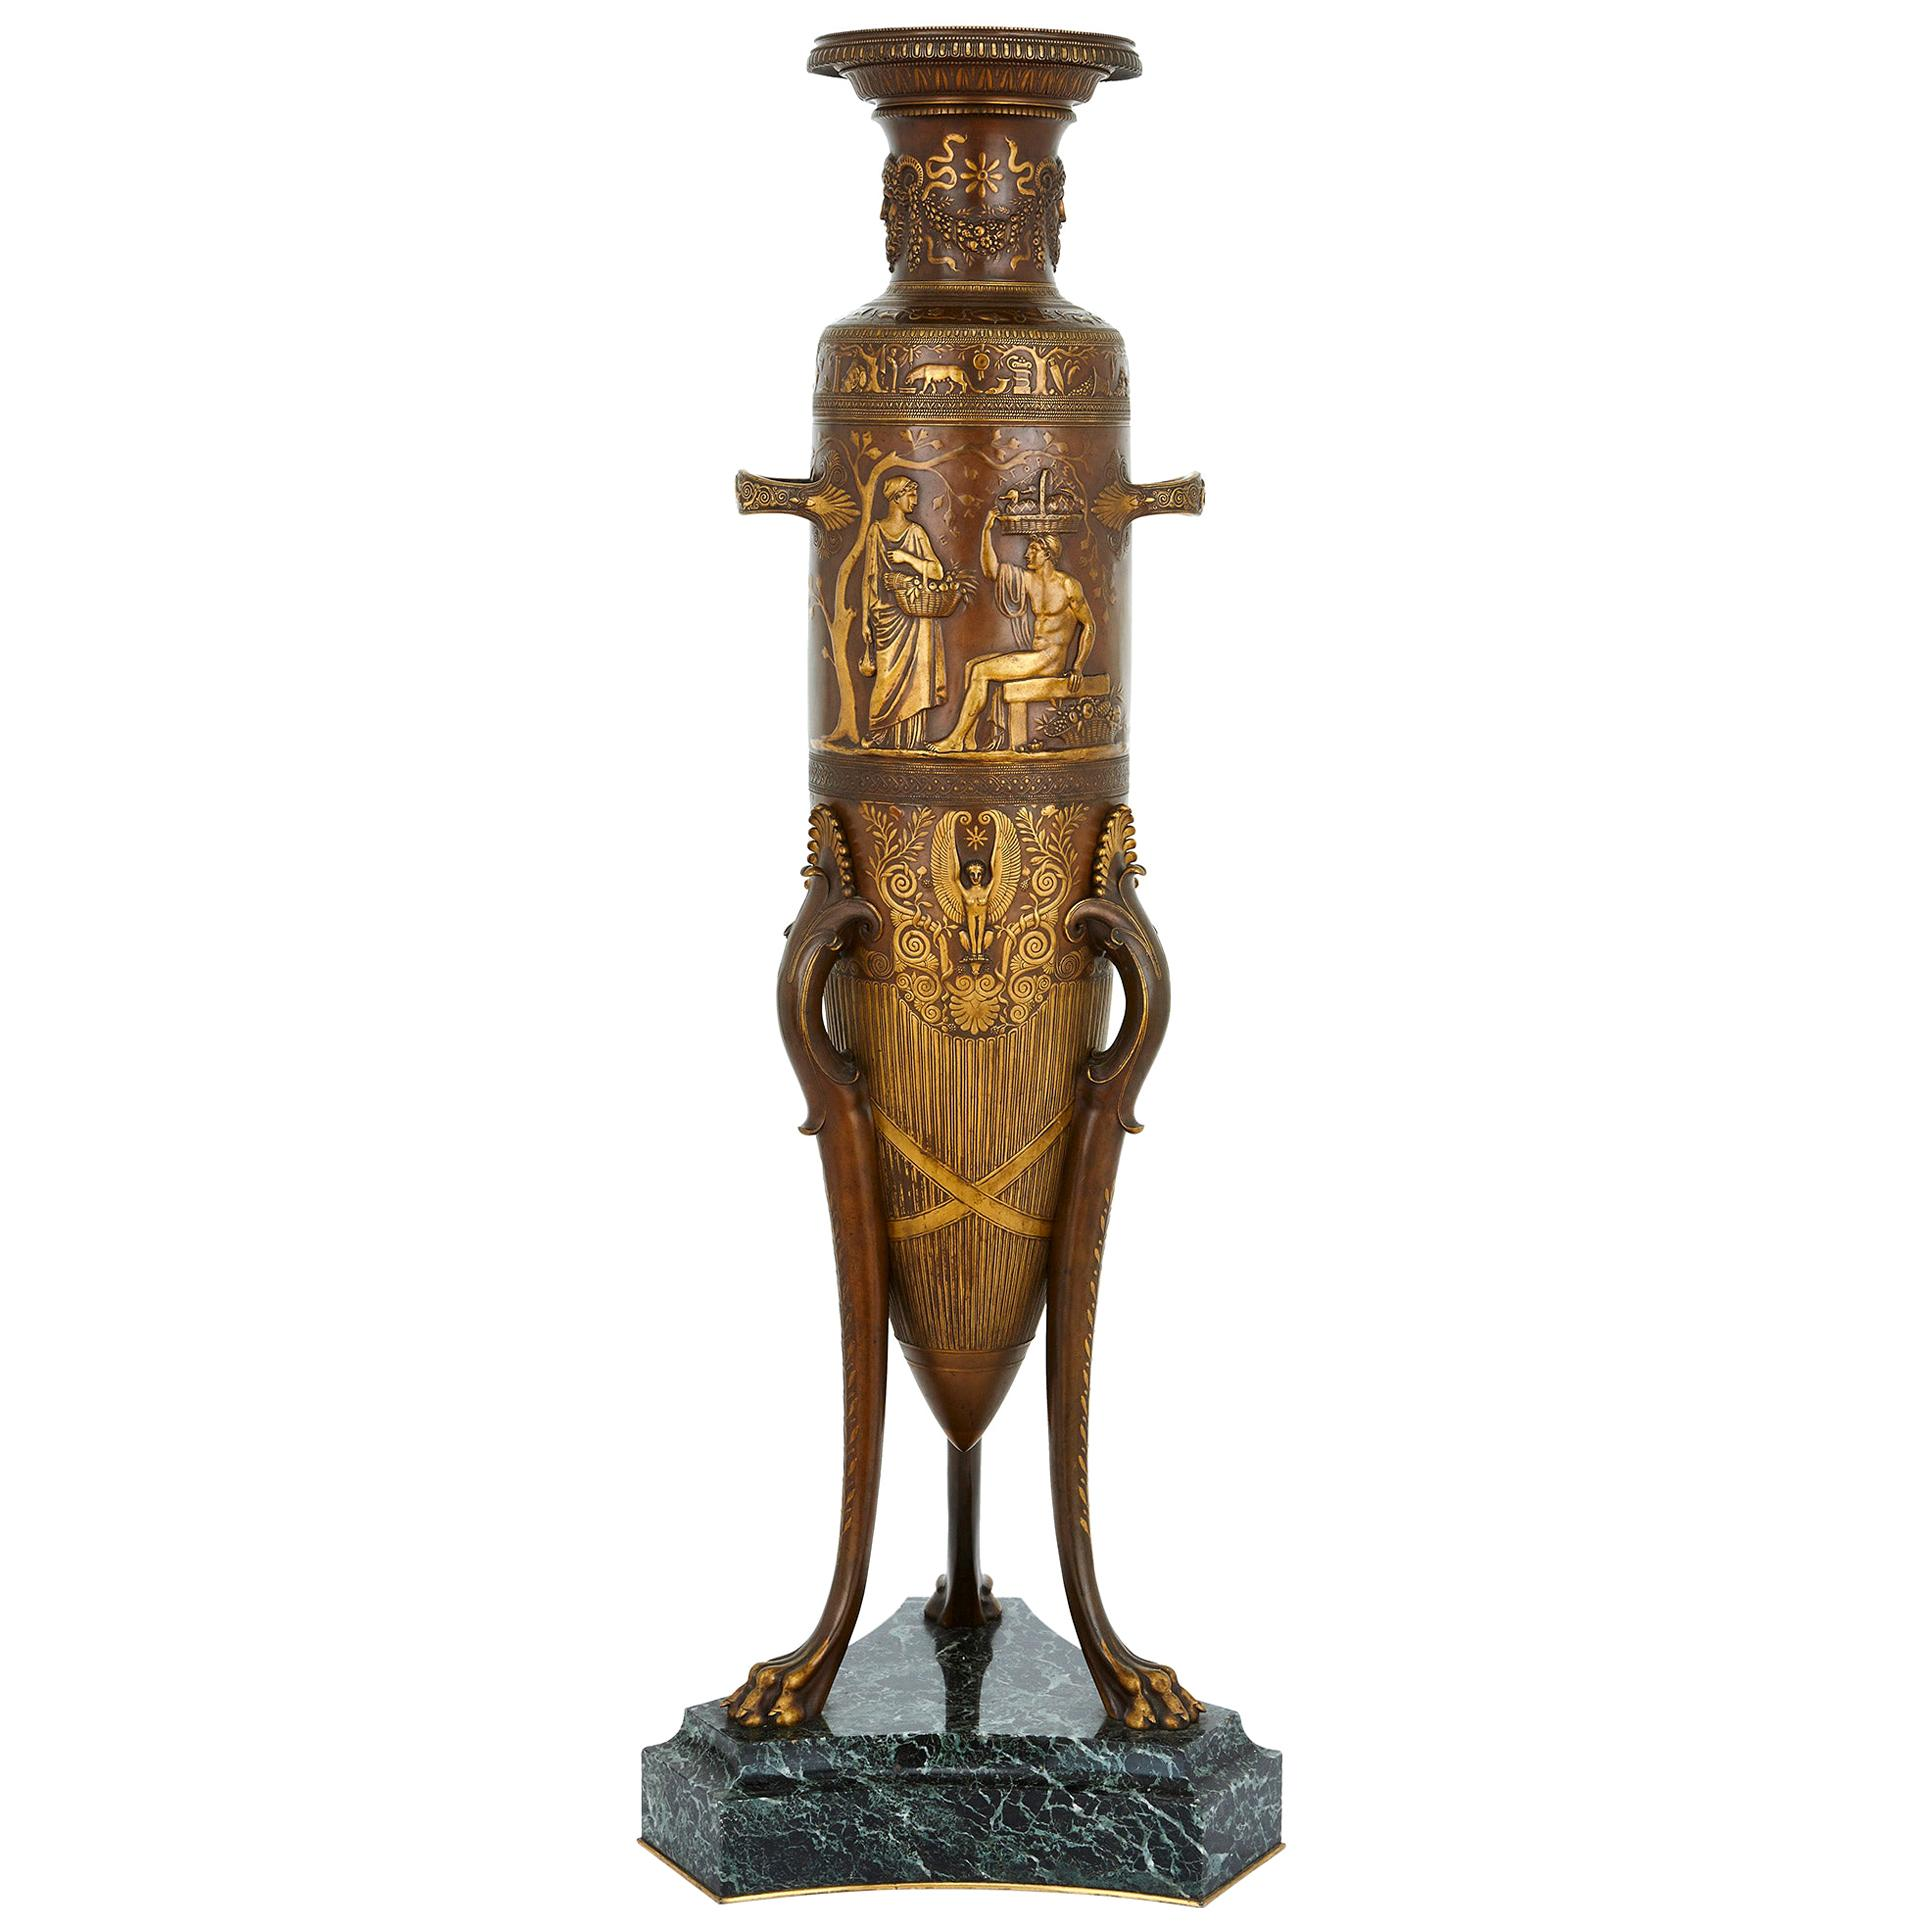 19th Century French Neoclassical Style Bronze Vase by Levillain and Barbedienne